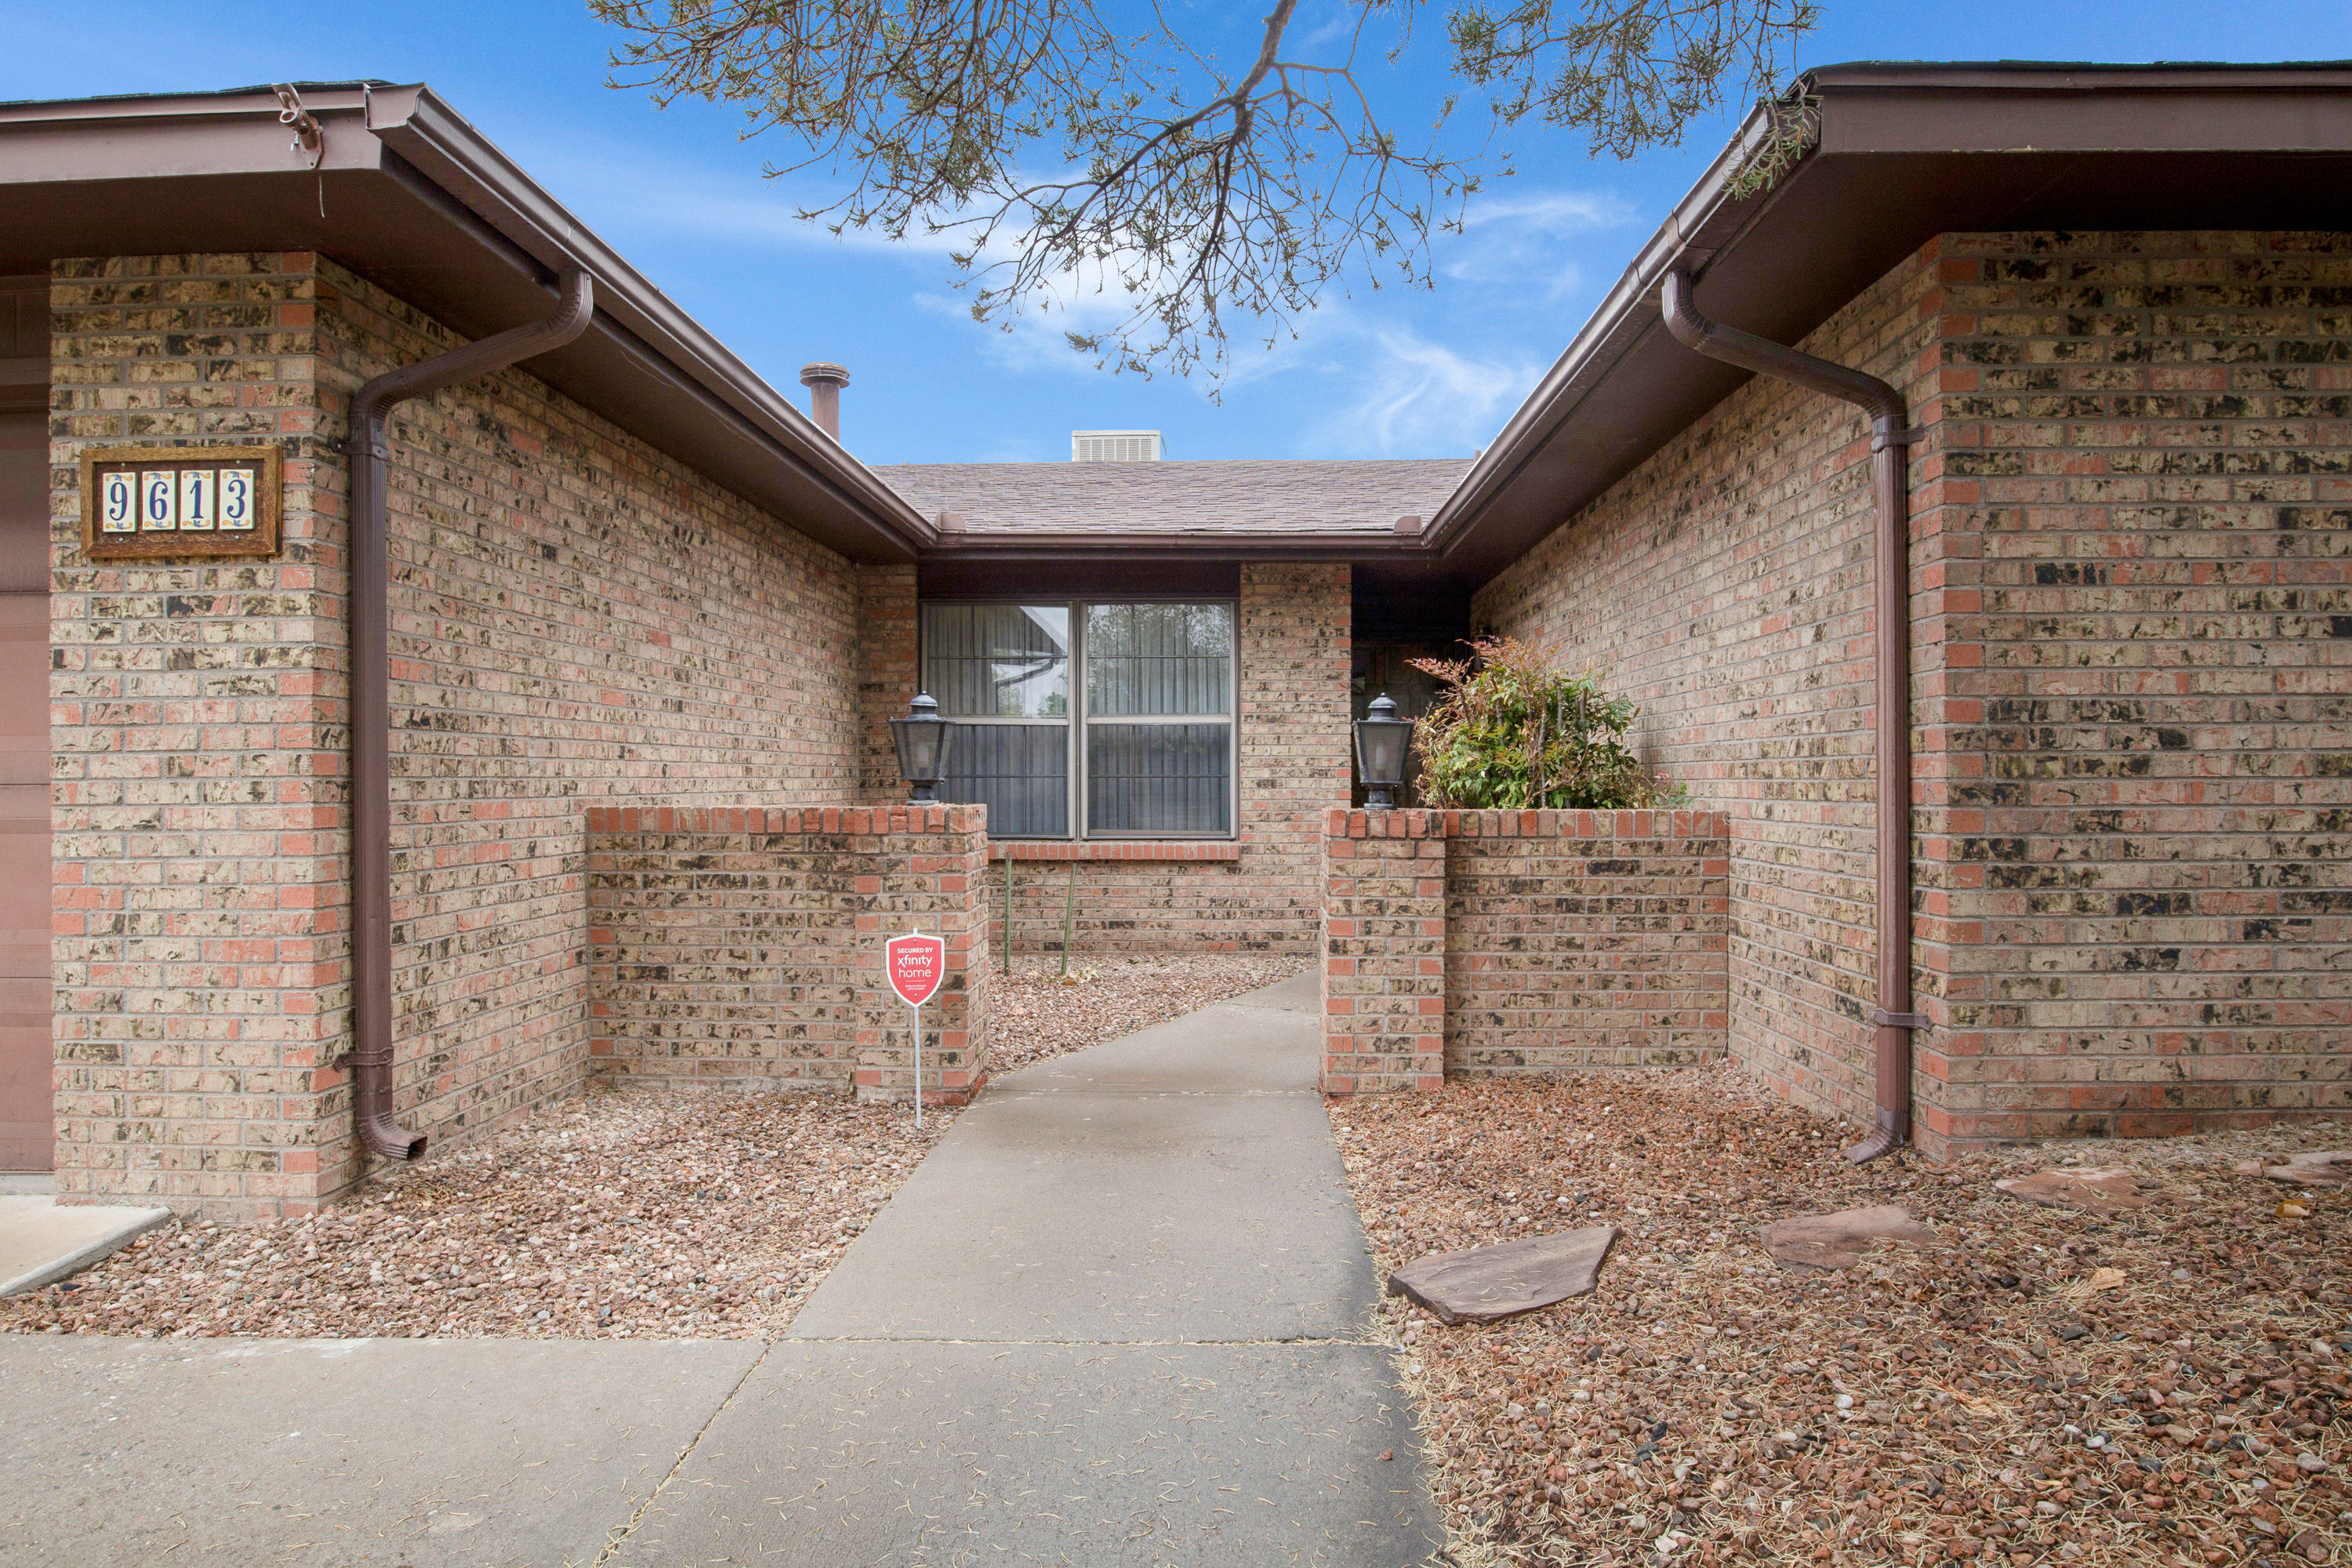 Seller has permission to show and accept back up offers. Well-maintained home in a great neighborhood in the northeast heights on a quiet street in the La Cueva school district. 3 bed, 2 bath , gas stove, open floor plan, covered patio and deck, landscaping front and back, privacy walls in back. Formal dining room and breakfast area, with laundry room off kitchen. Refrigerator, washer and dryer included. Priced to sell fast and make it your own!